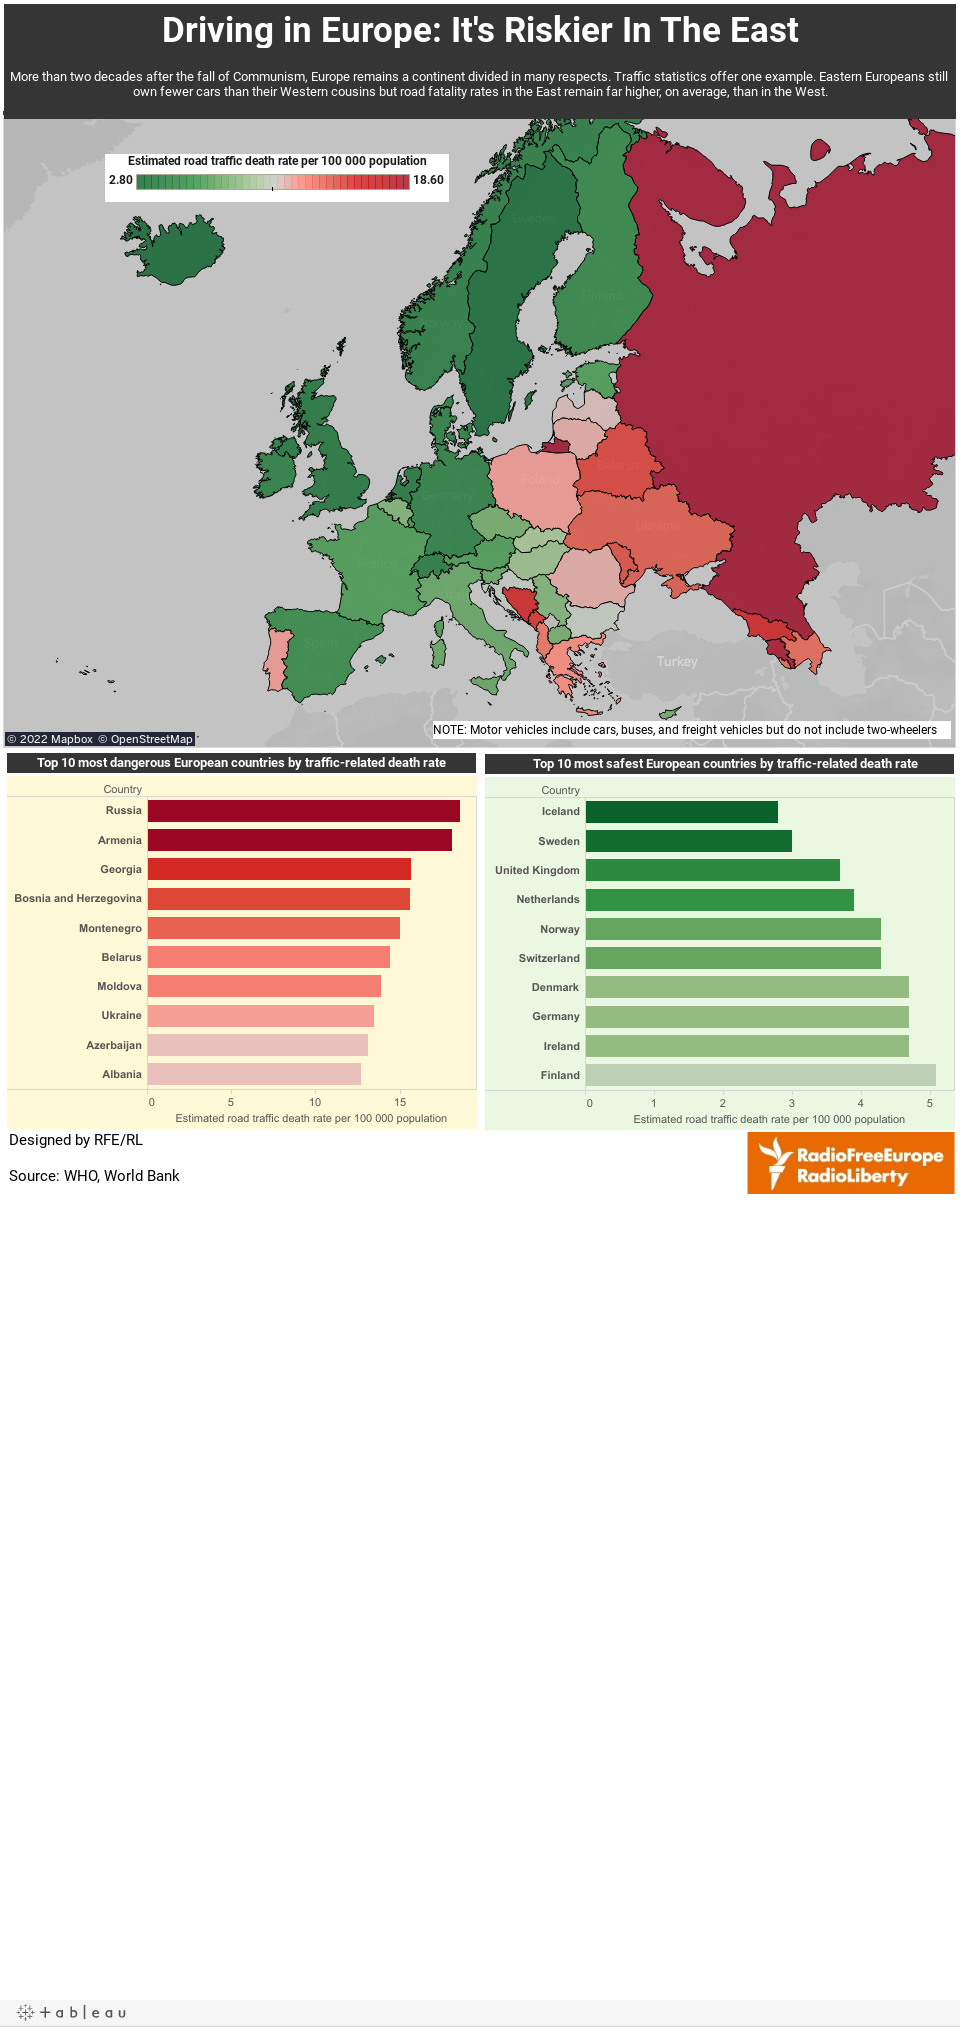 Europe's Most Dangerous Countries For Road Traffic Accidents